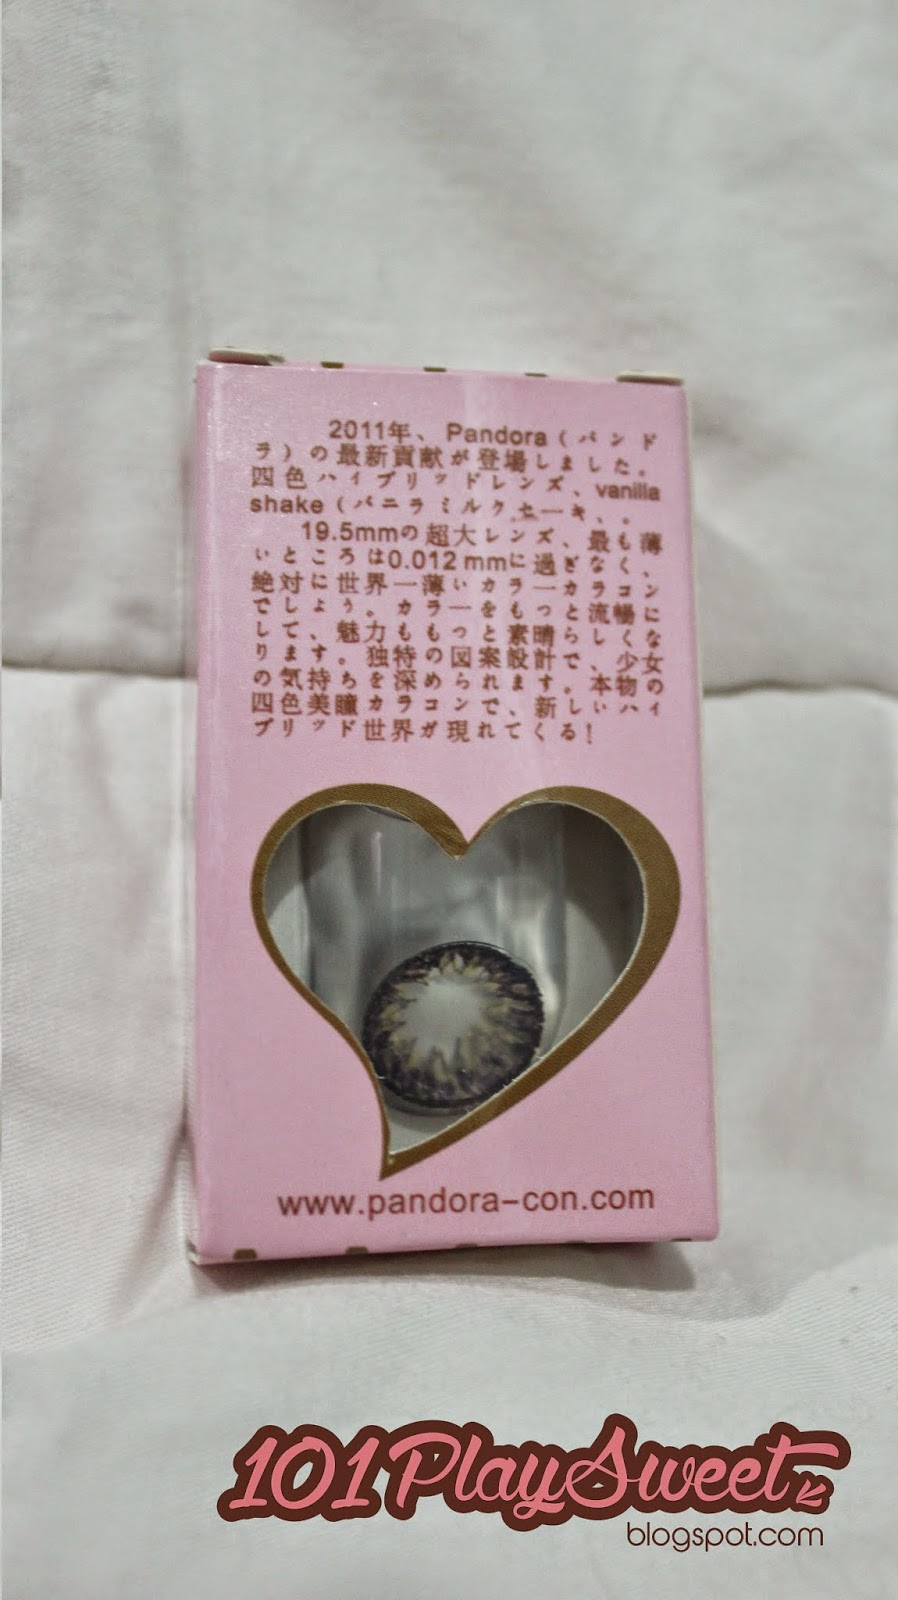 101 playsweet pandora vanilla shake in grey contact lens review so i do research on internet and i found this information something similar but uniquely different